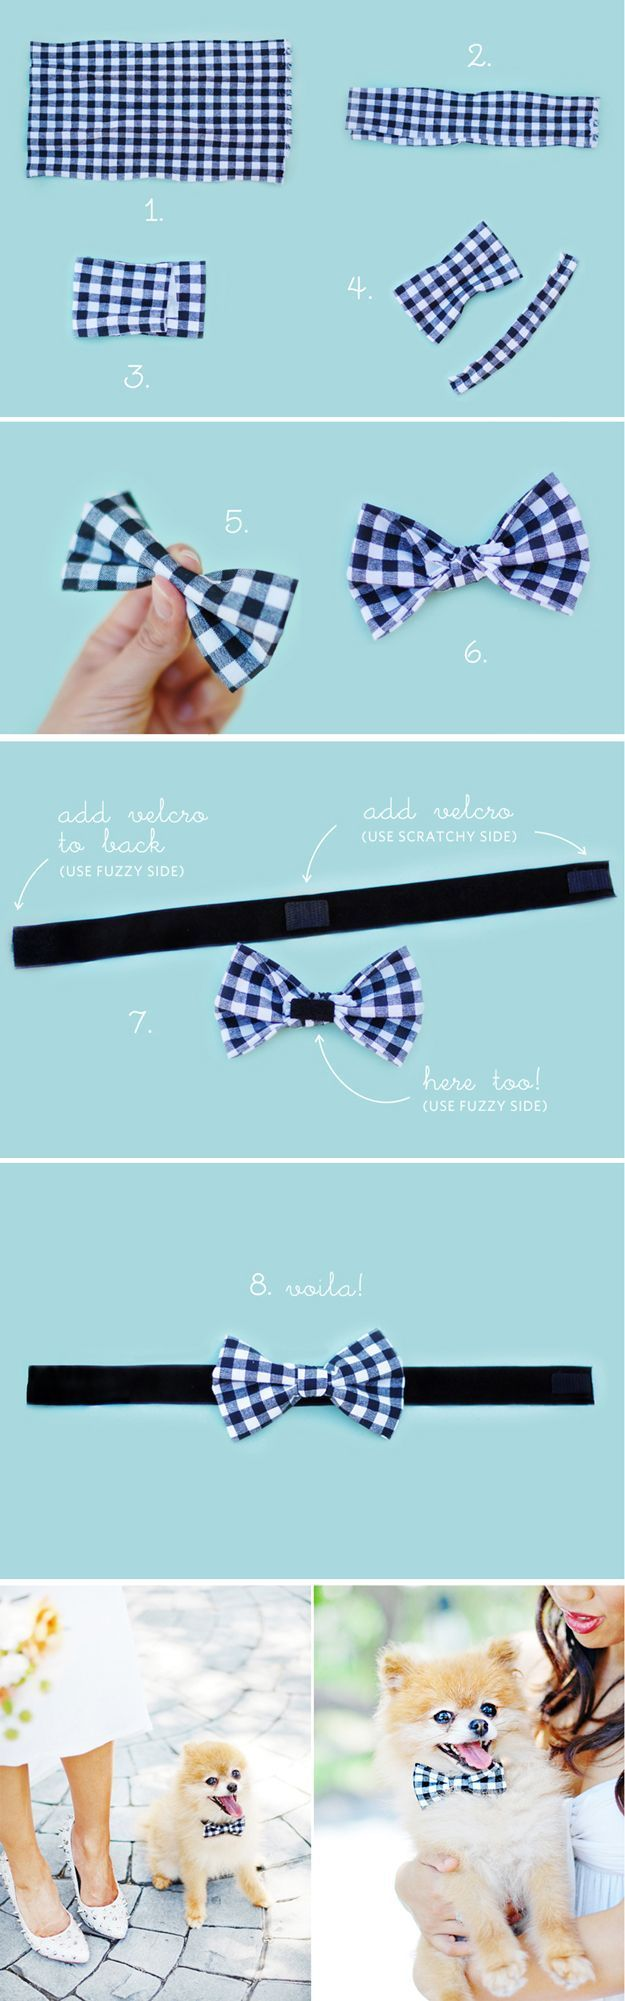 Cute and Easy No Sew Dog Craft Project | Doggie Bow Tie by DIY Ready at http://diyready.com/diy-dog-crafts-mans-best-friend-will-love/